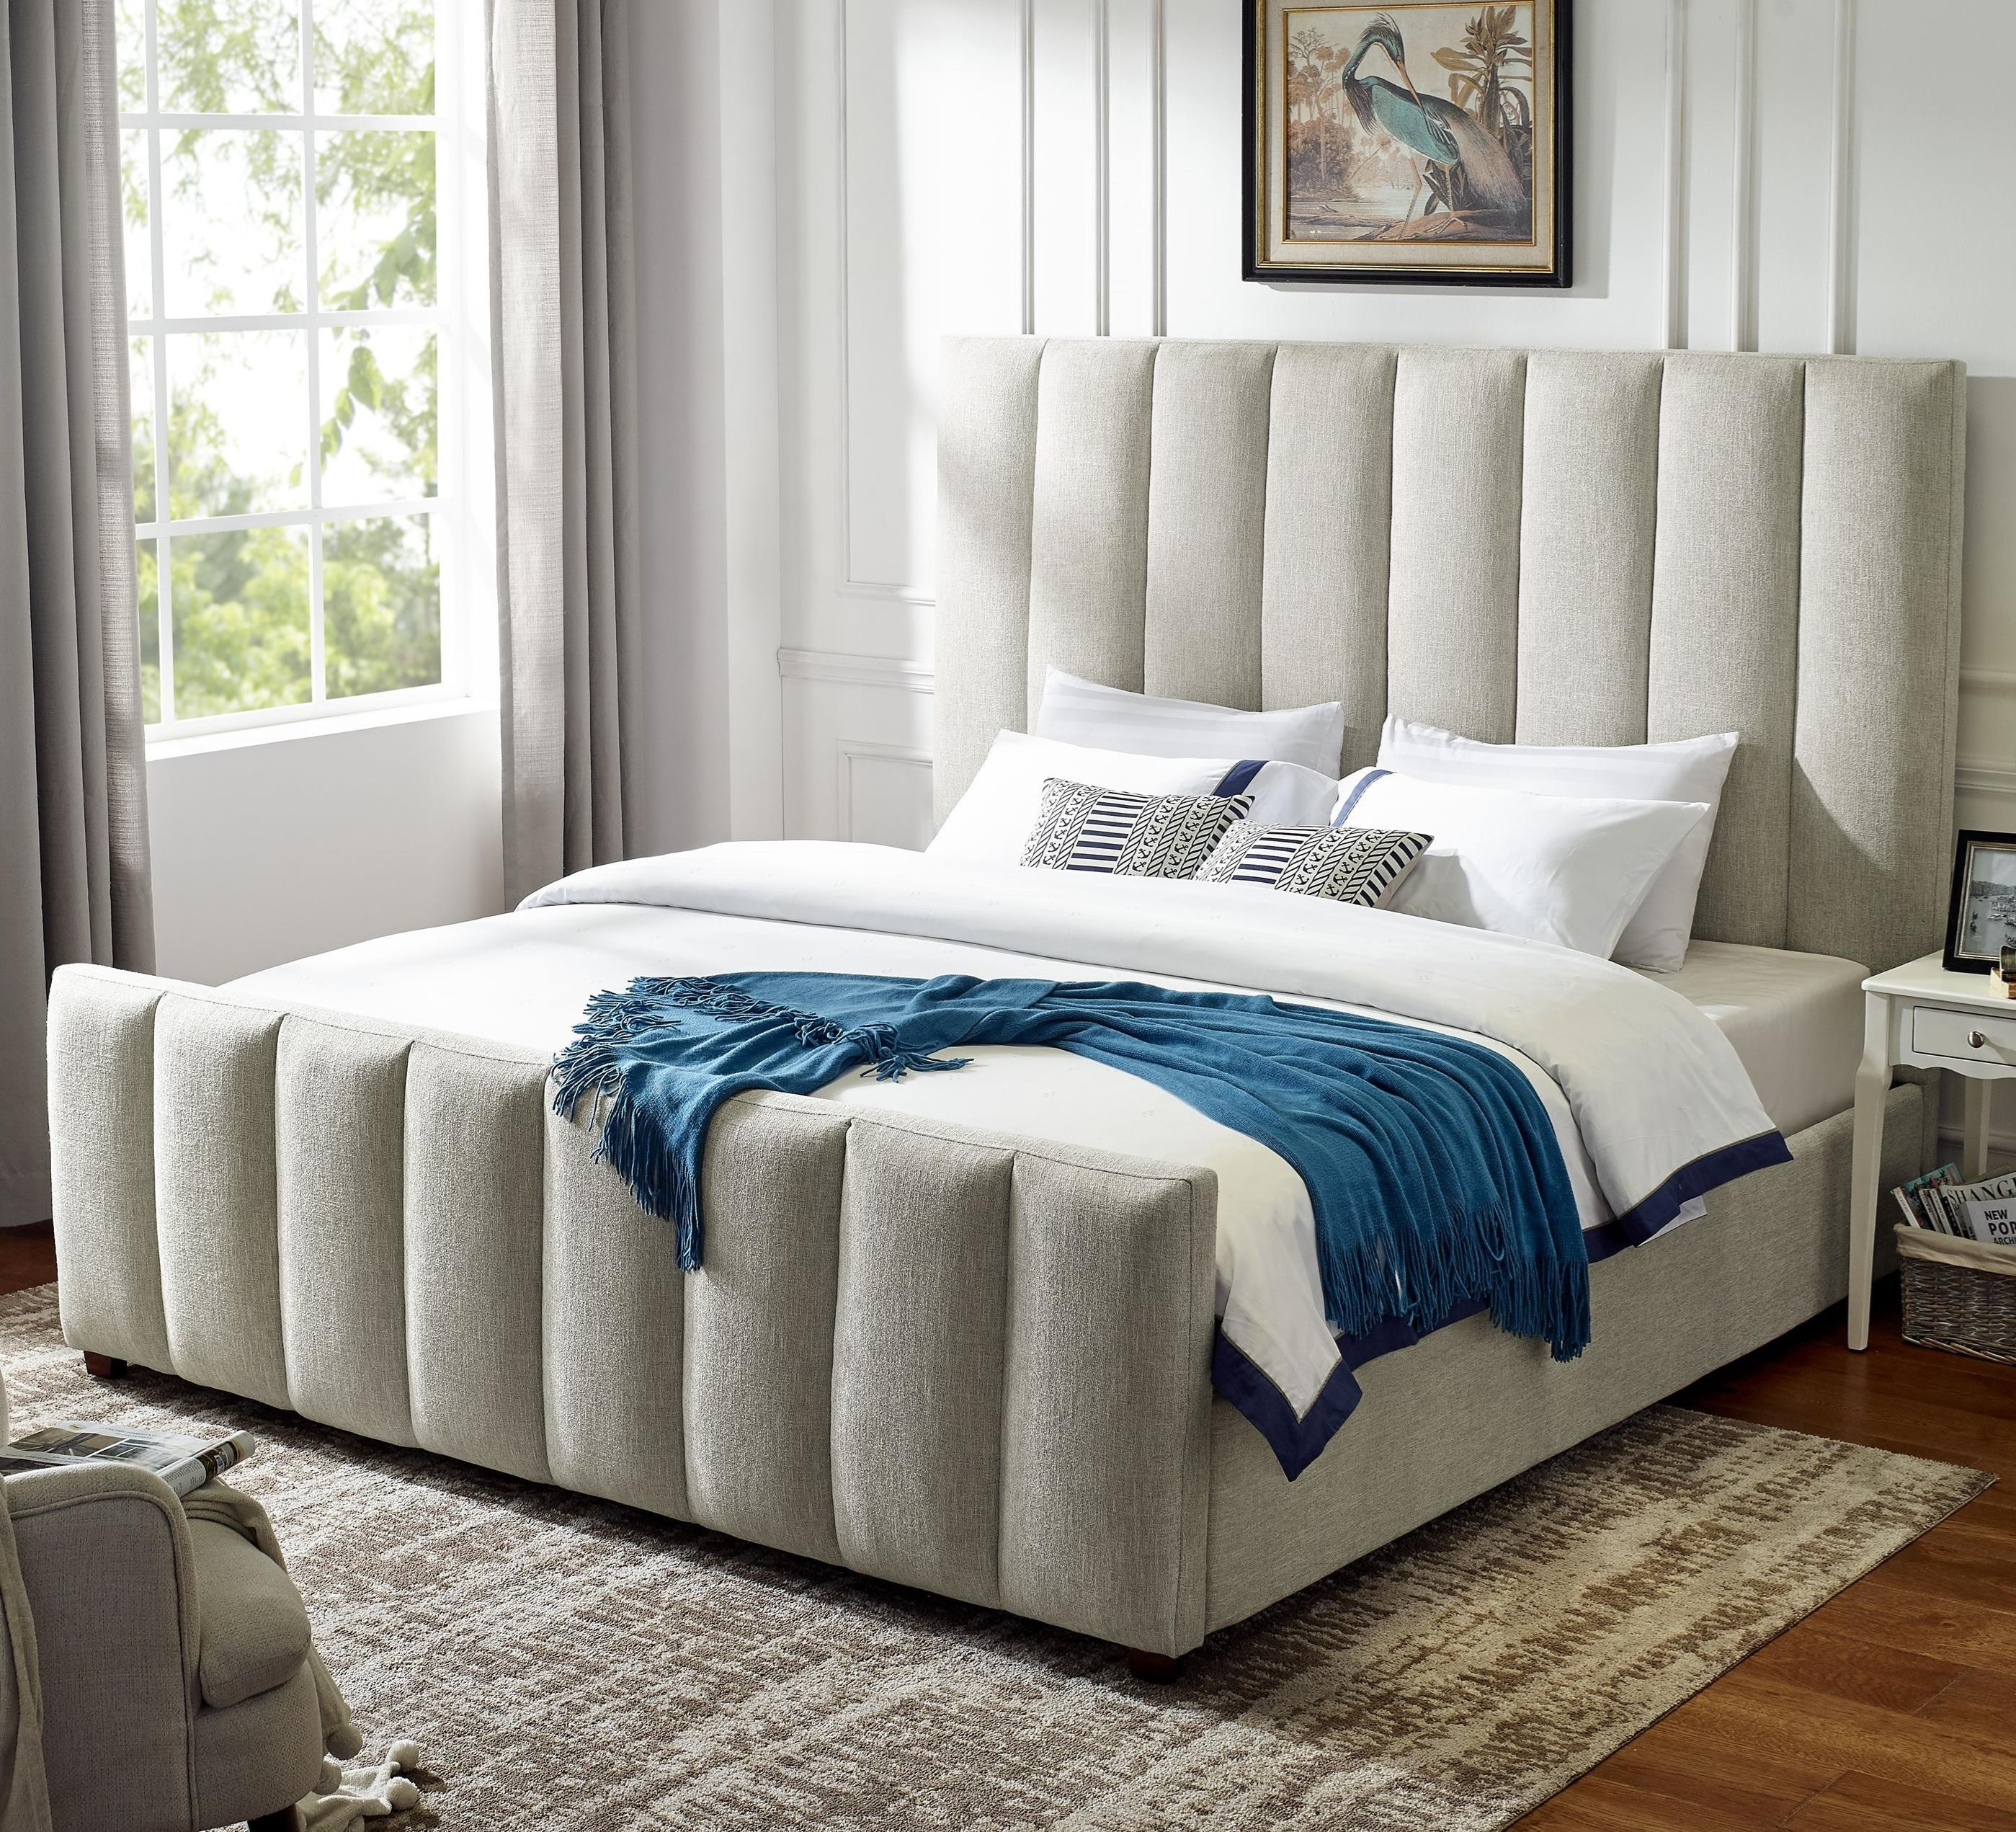 Steve Silver Kenley King Upholstered Bed With Channel Tufting And Heathered Tweed Fabric A1 Furniture Mattress Upholstered Beds